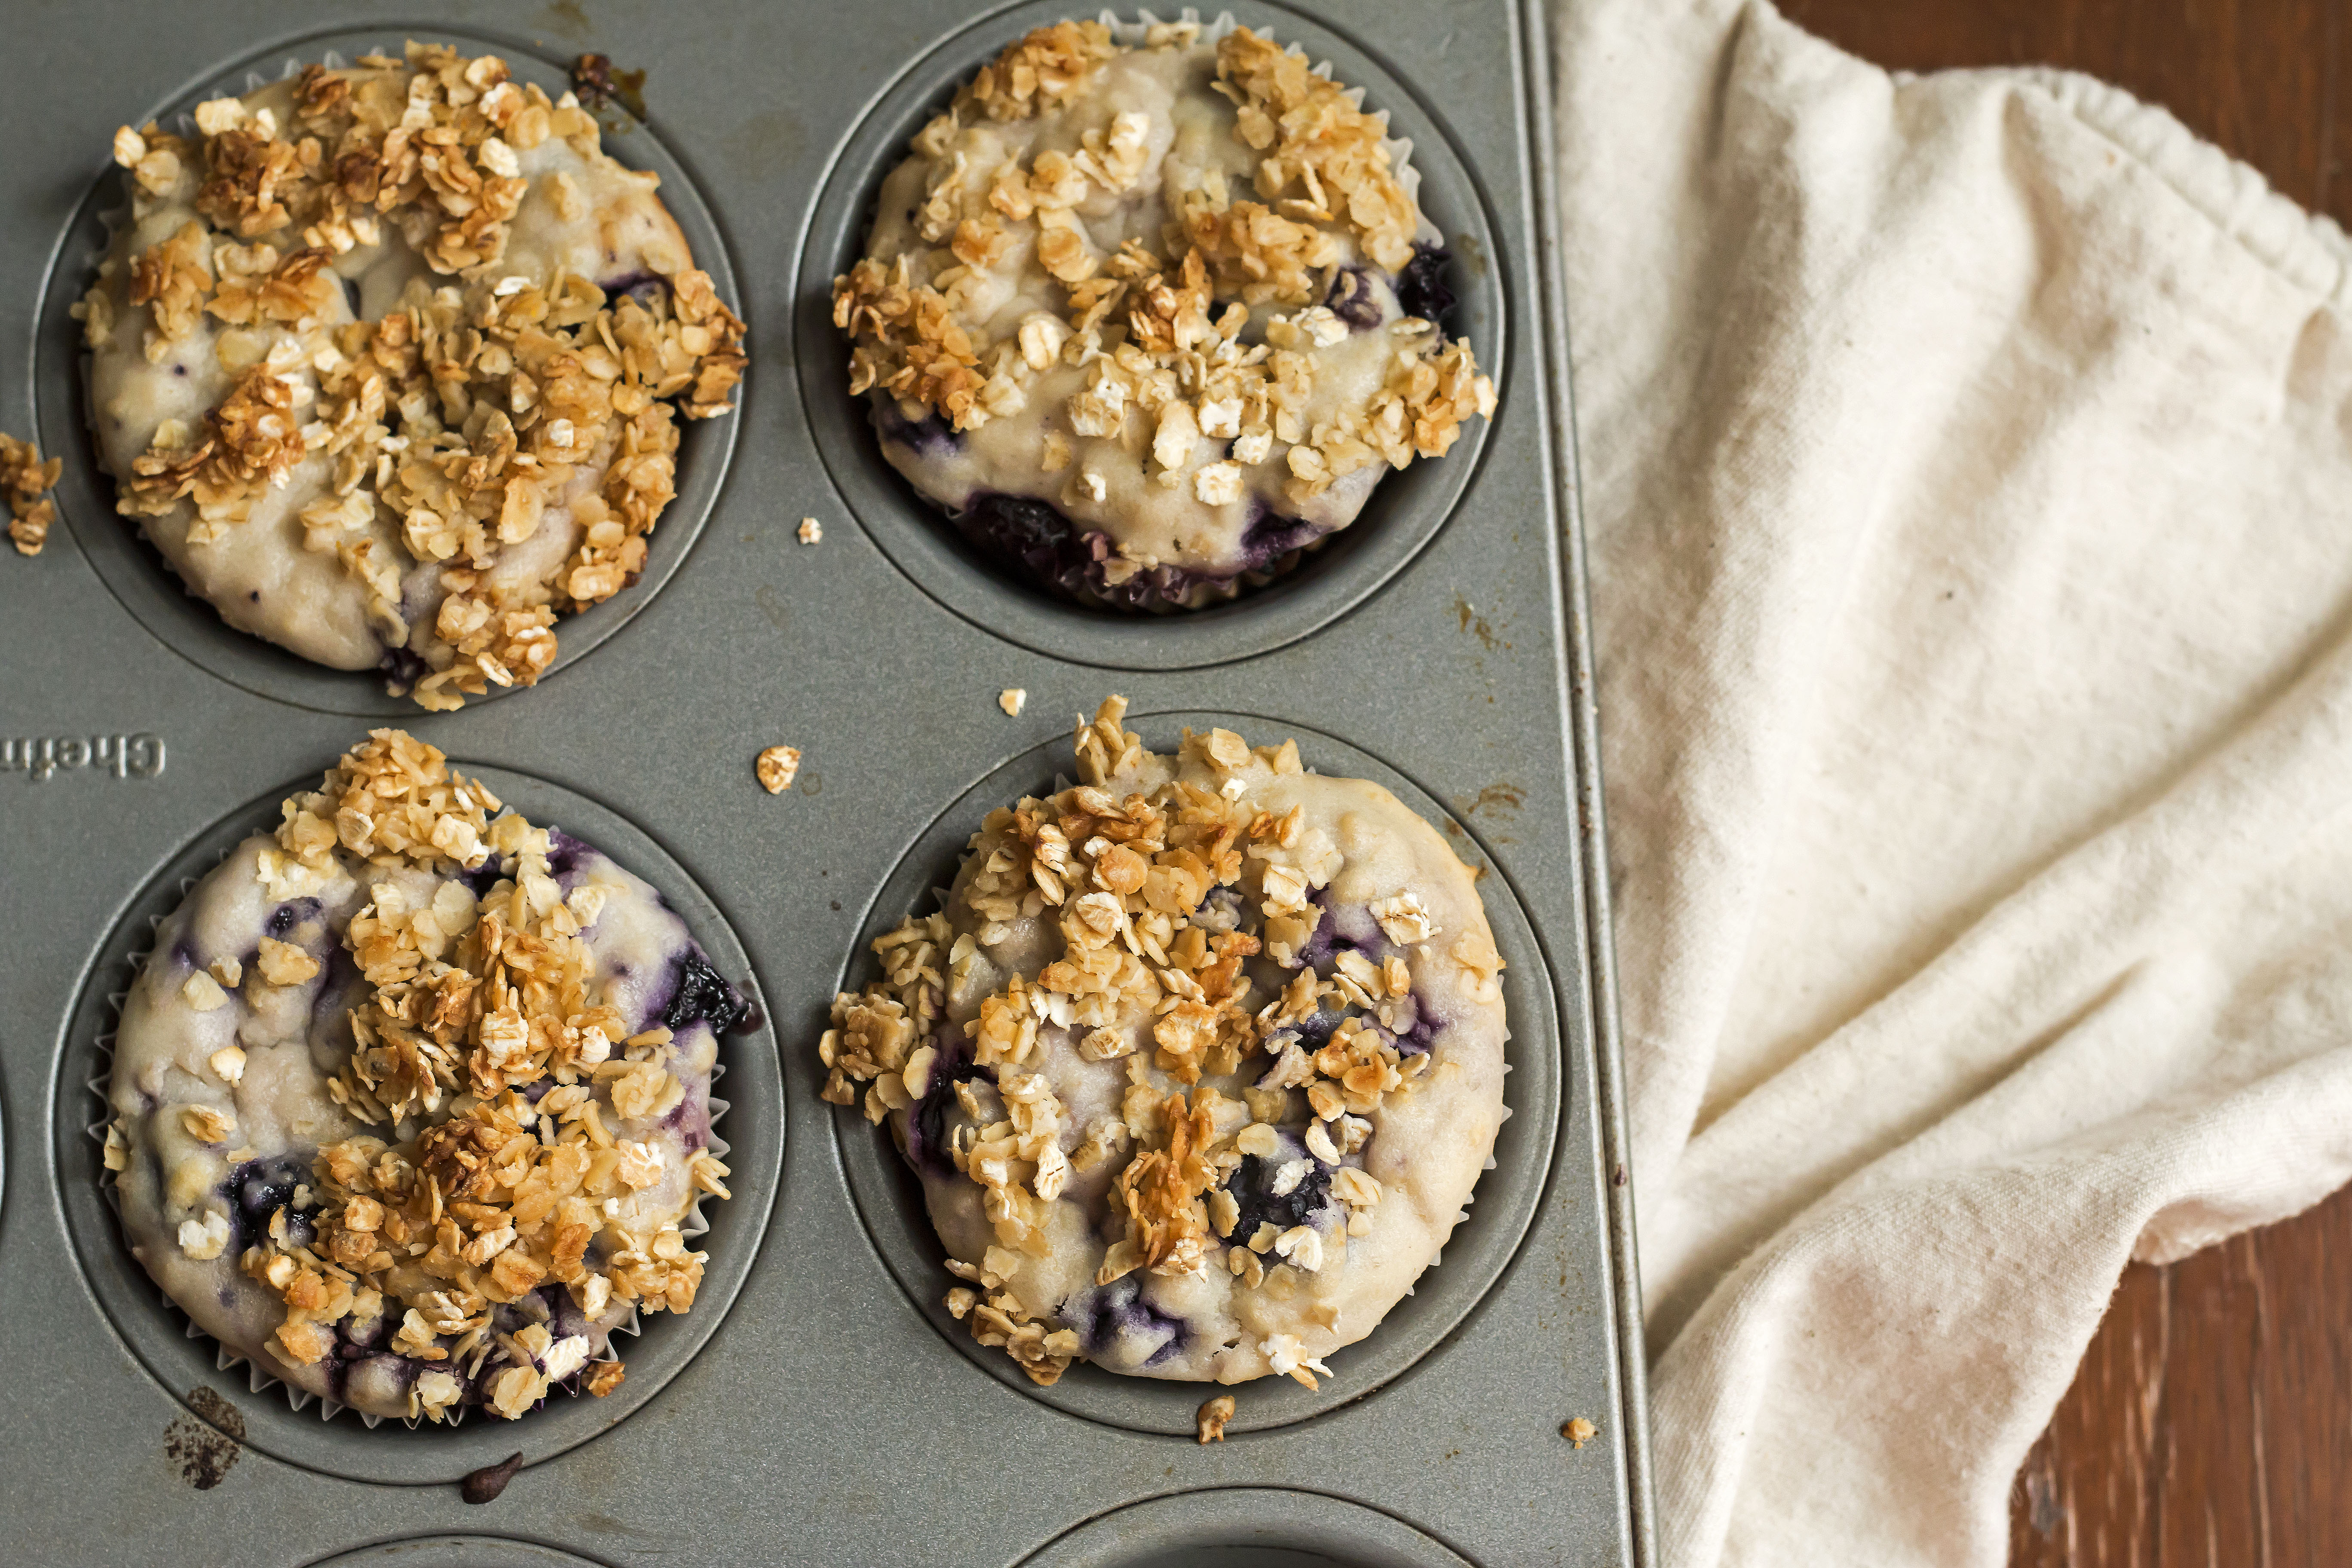 Blueberry Muffins Without Refined Sugar--Gluten Free with L.B.